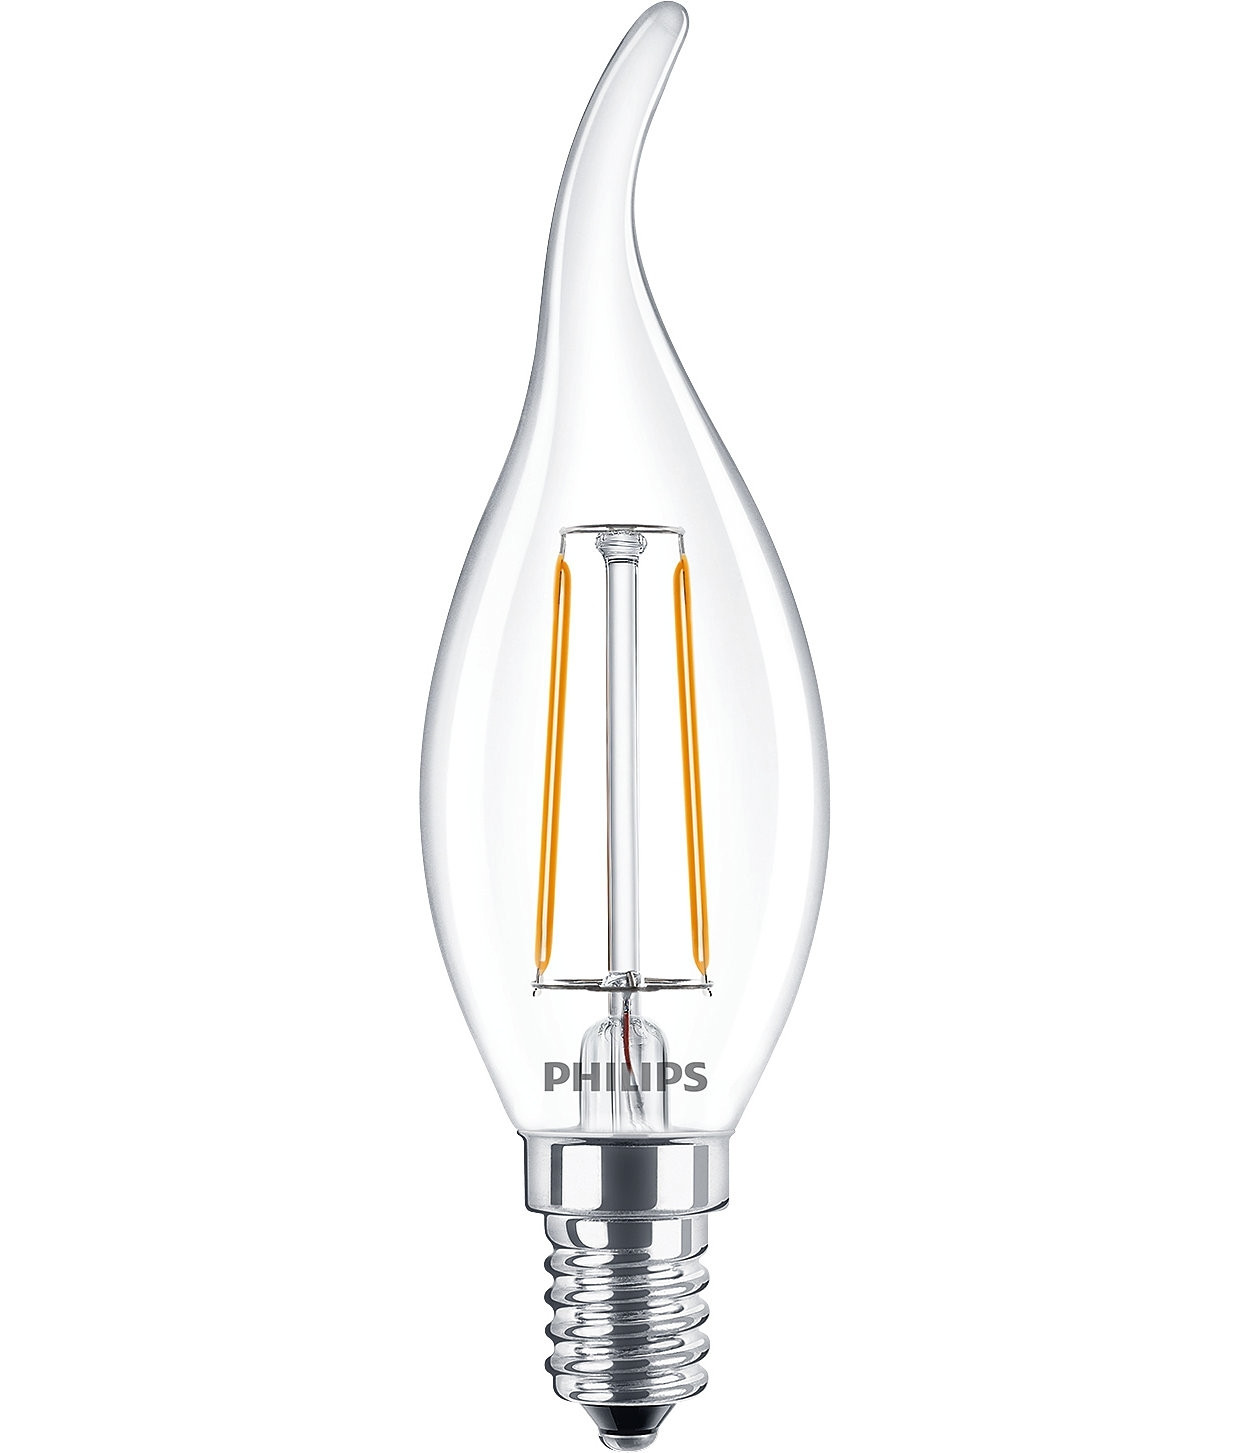 LED Lampe Filament Flammenform Philips • E14 • 230V/AC • 2,0W (2W=25W) • 250lm • warmweiss 2700K • 360° • 35x123mm • Hülle klar • nicht dimmbar